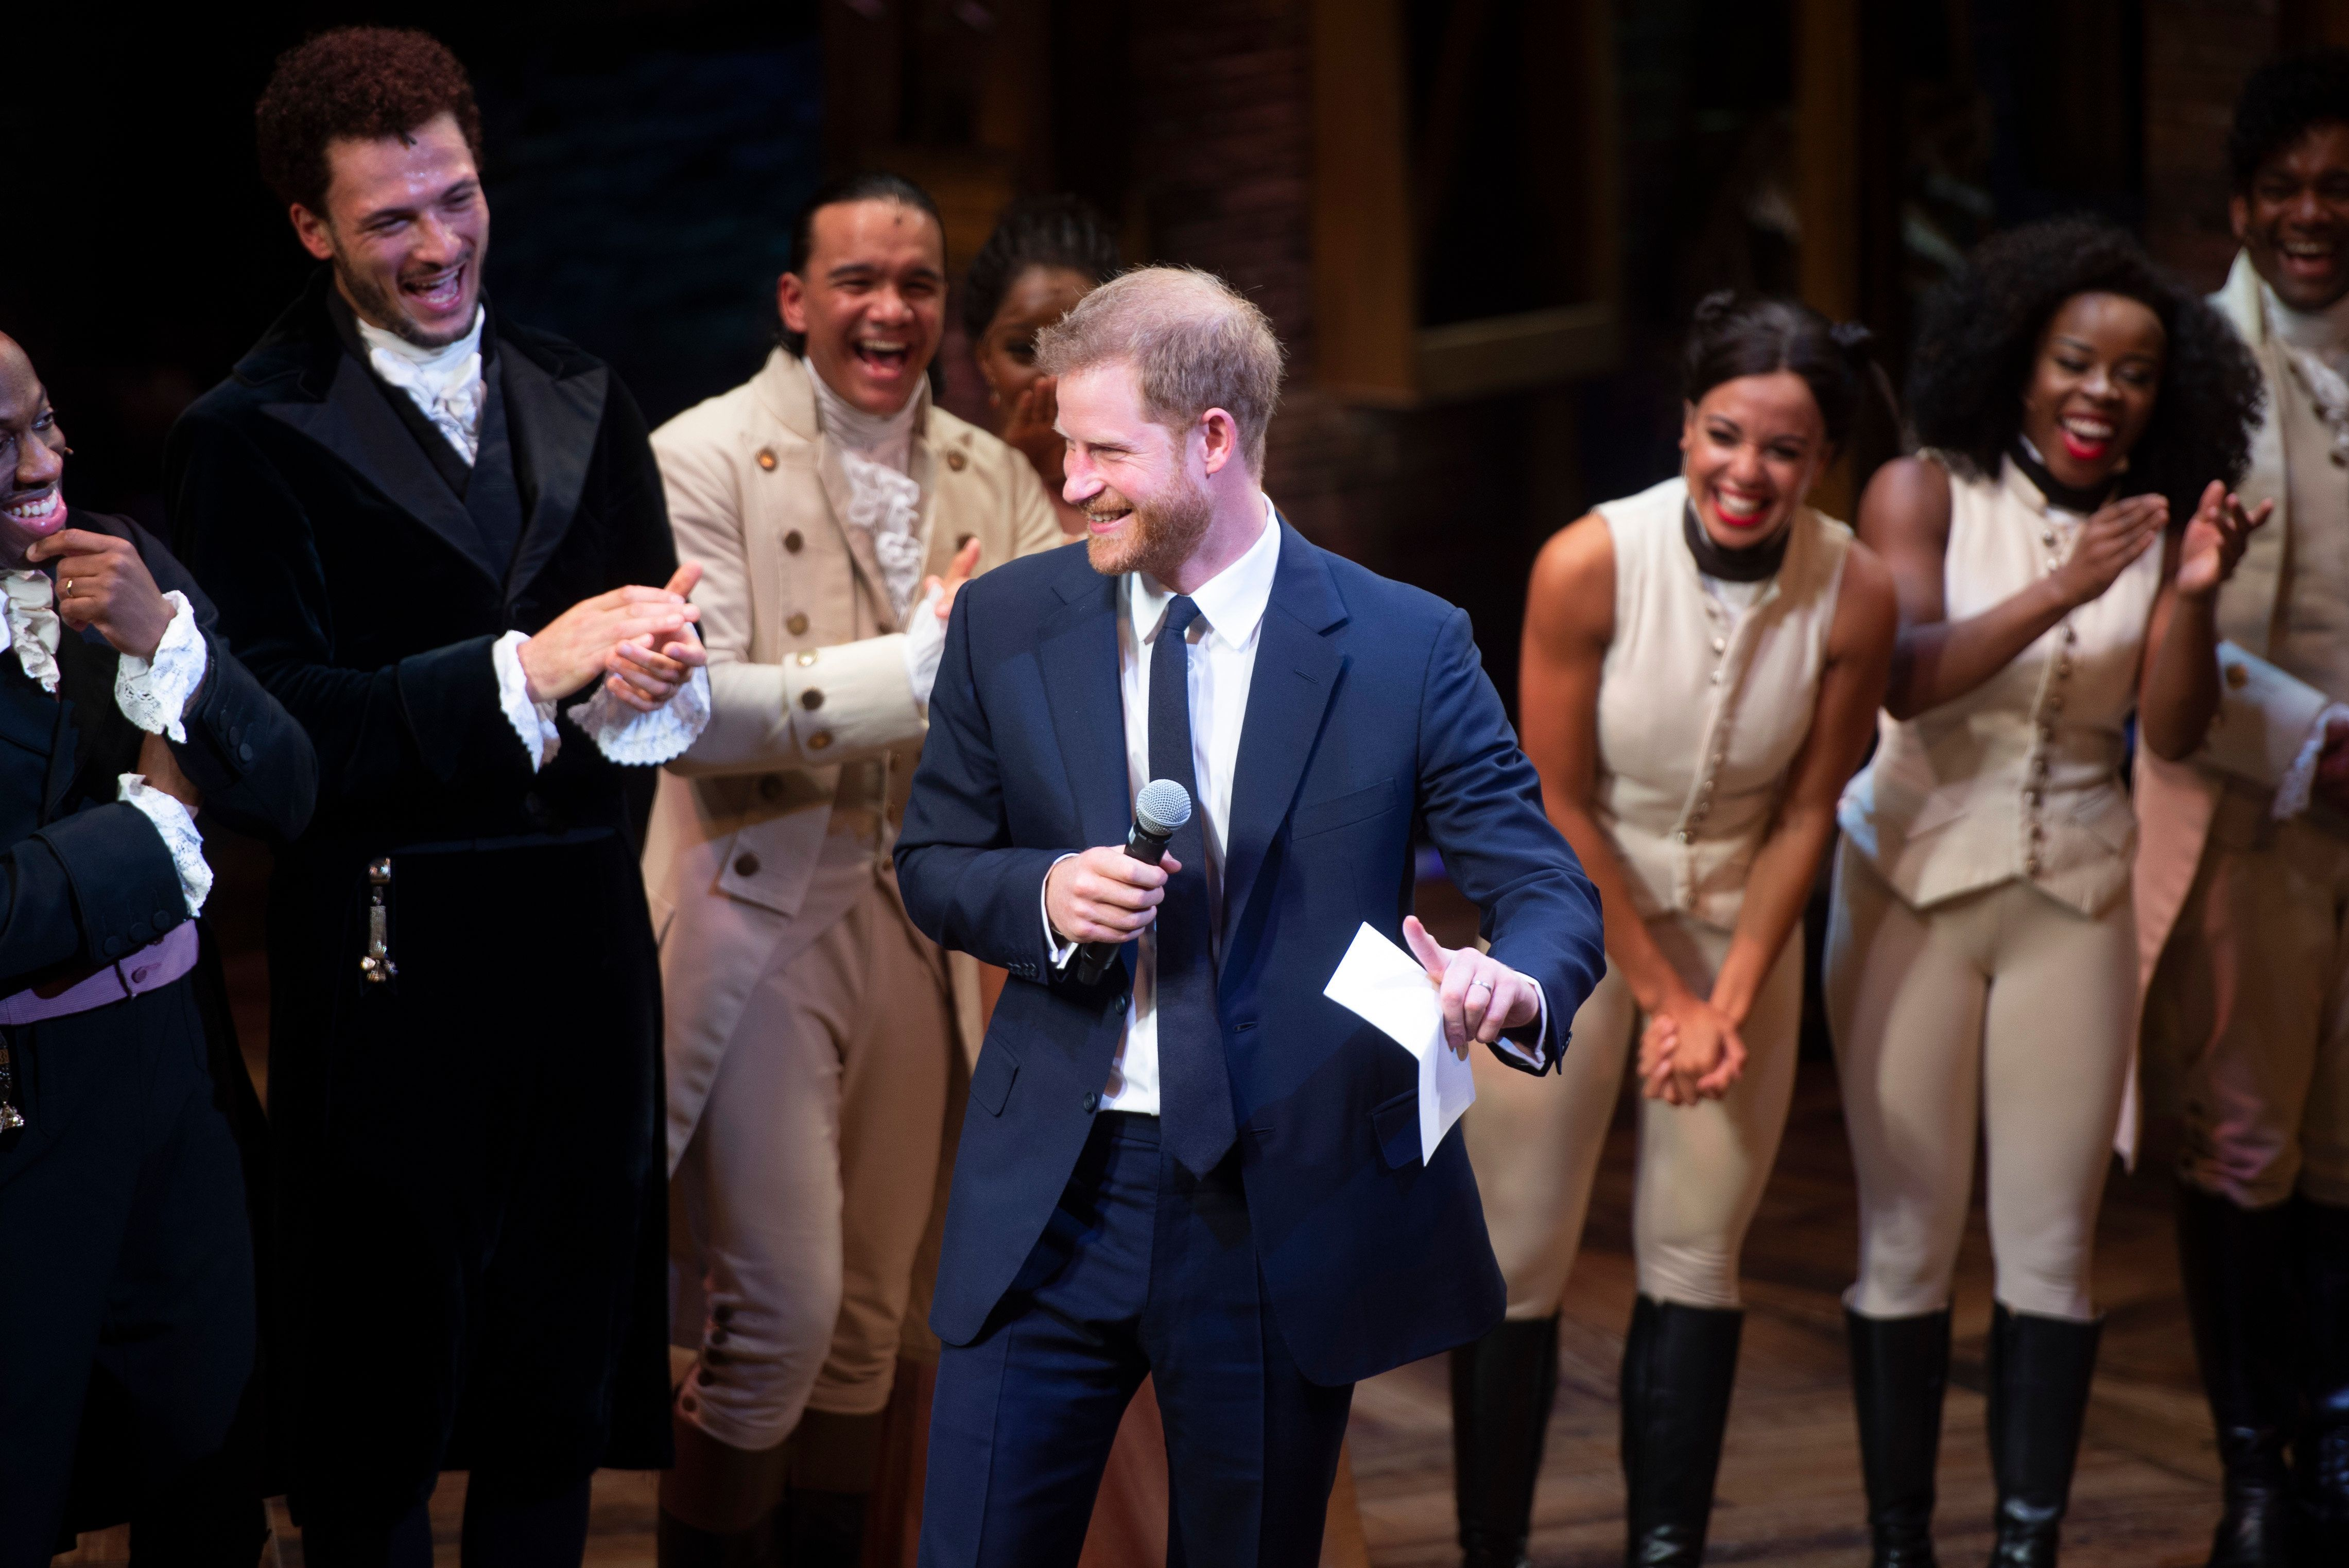 Britain's Prince Harry, Duke of Sussex (C) gives a speech with the cast and crew after a gala performance of the musical 'Hamilton' in support of the charity Sentebale at the Victoria Palace Theatre in London on August 29, 2018. (Photo by Dan Charity / POOL / AFP)        (Photo credit should read DAN CHARITY/AFP/Getty Images)